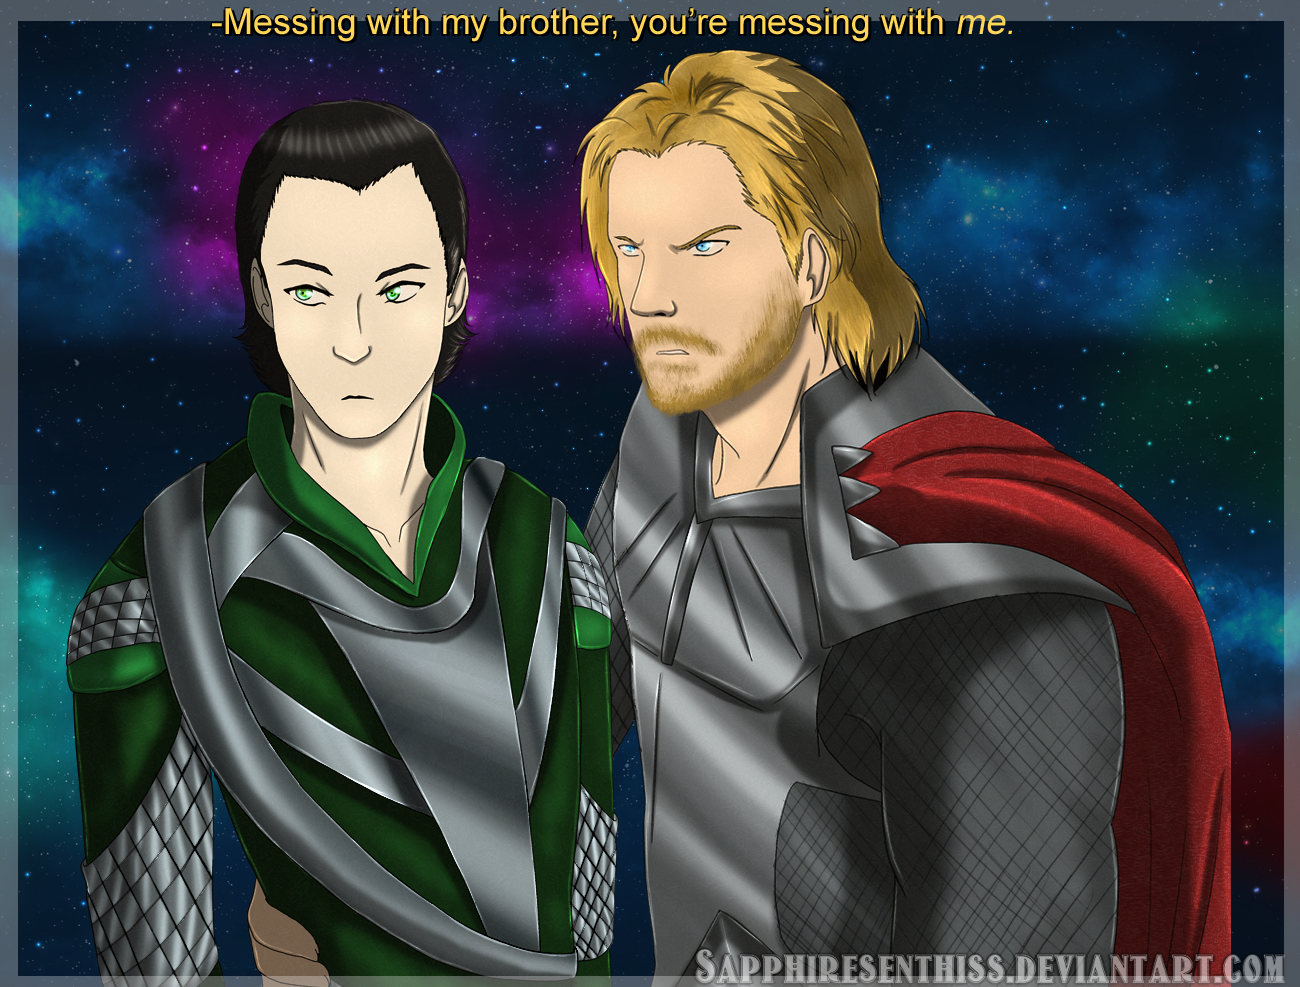 Thorki (Loki x Thor) by Sapphiresenthiss on DeviantArt